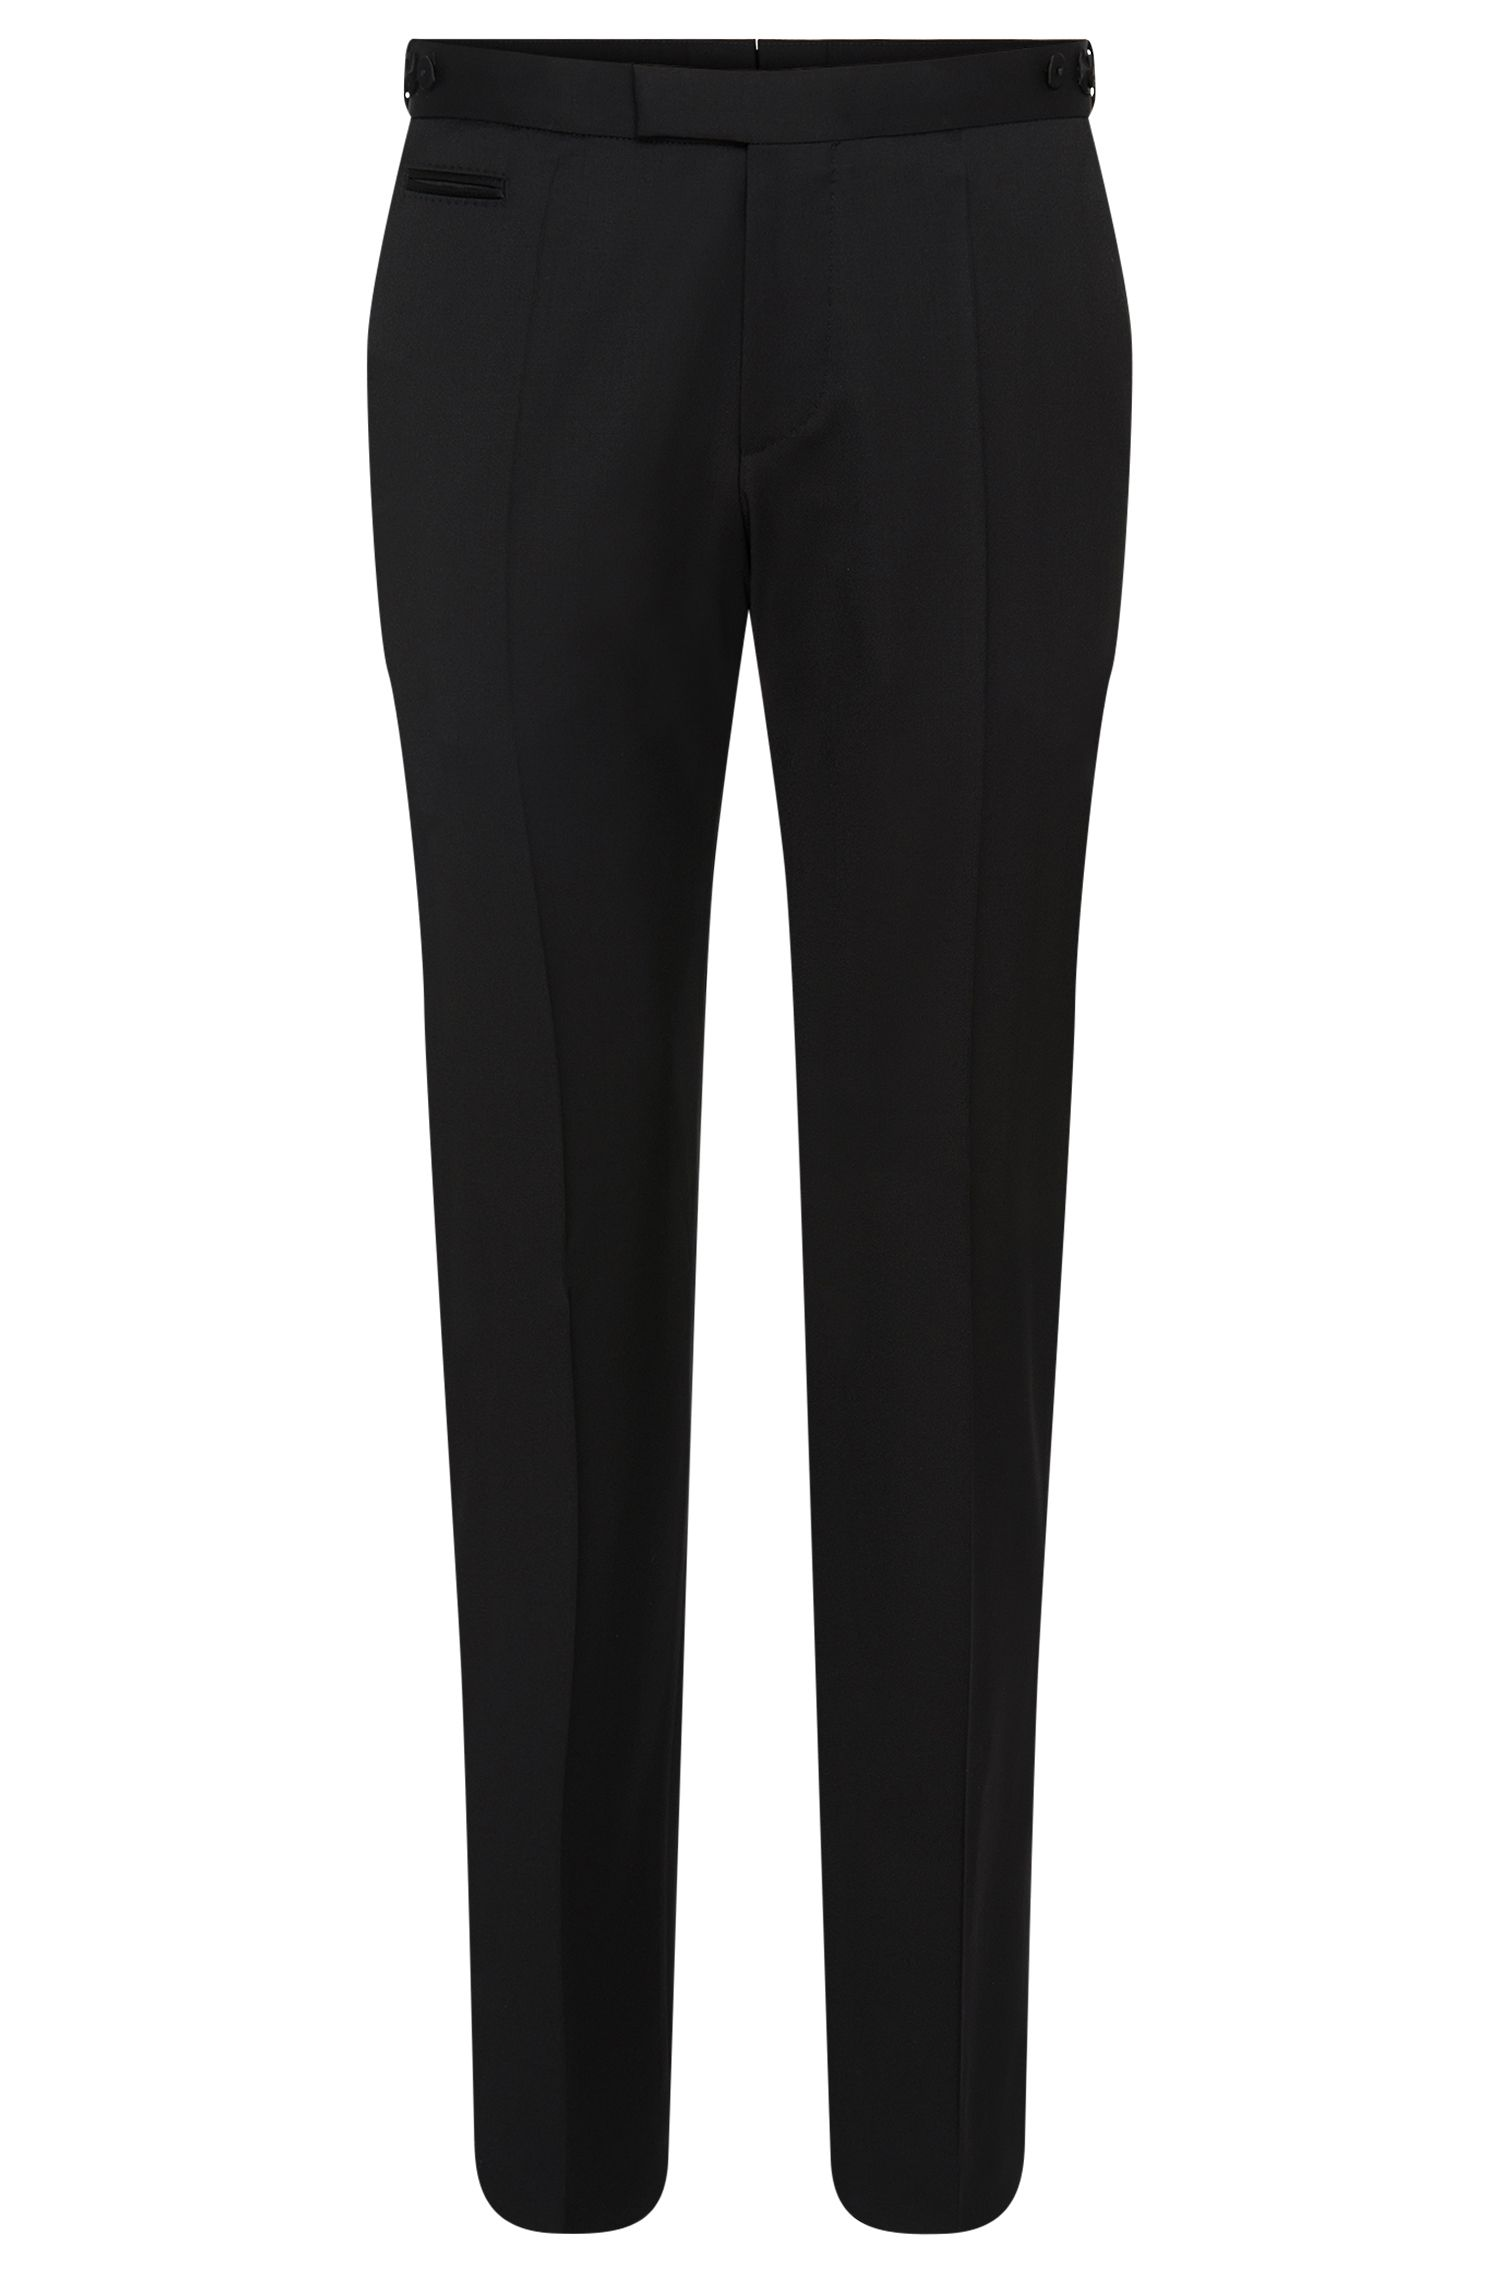 'Glister' | Slim Fit, Virgin Wool Waist-Tab Dress Pants